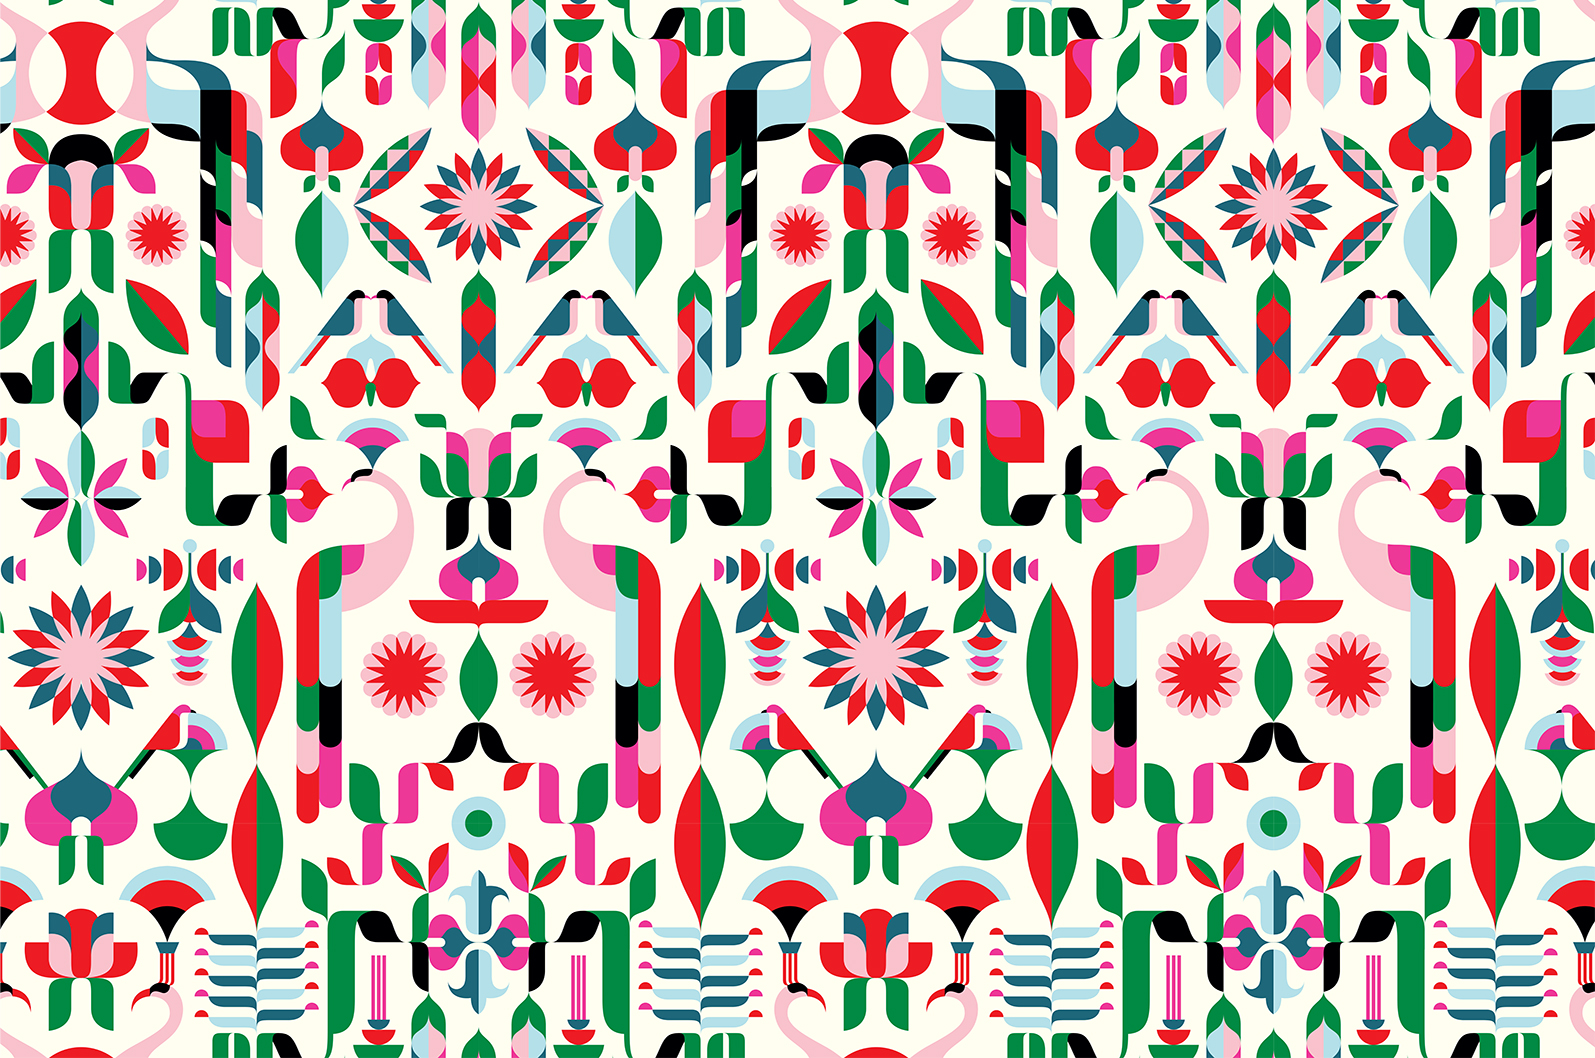 Malika Favre's Peacock Flower pattern is a bold, geometric interpretation of a floral theme. Malika took the form of a peacock as the basis for the colourful abstract pattern, inspired, she tells us, by the peacocks wandering in the grounds of the hotel she stayed at on a recent trip to the French Riviera.